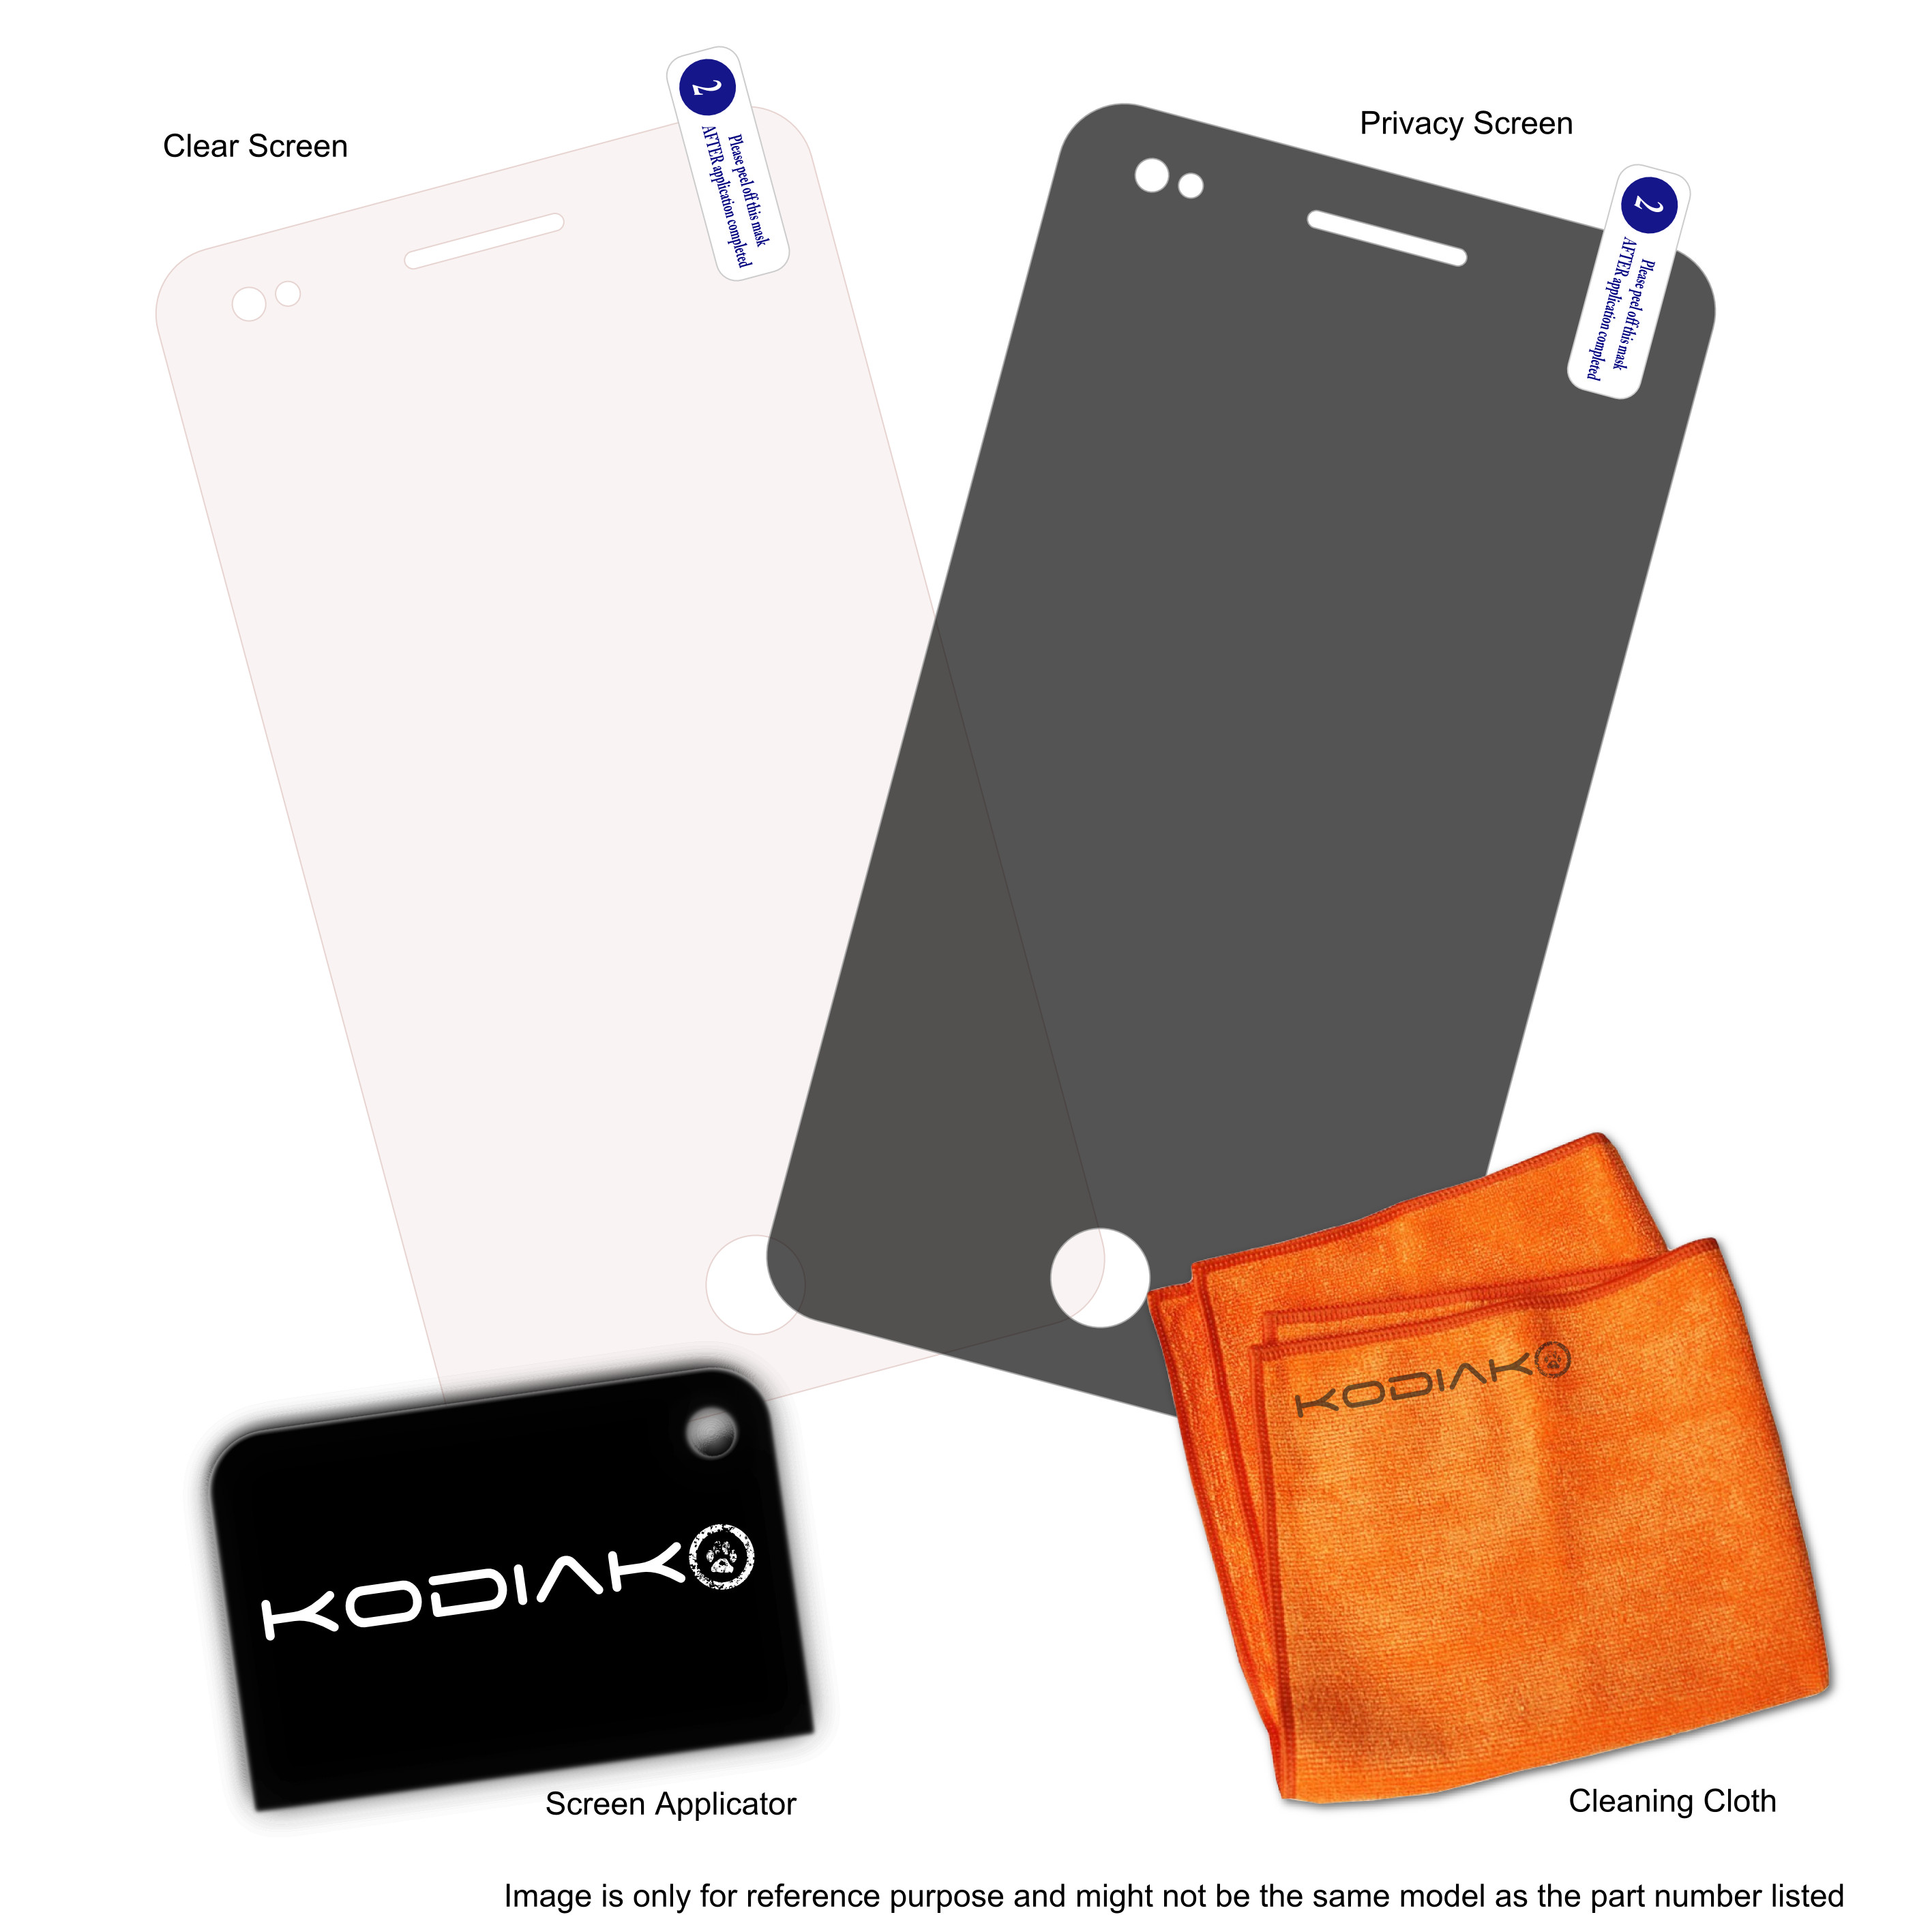 Original Kodiak Screen Protector Sony Xperia U iProtect 2-Package (Clear + Privacy)